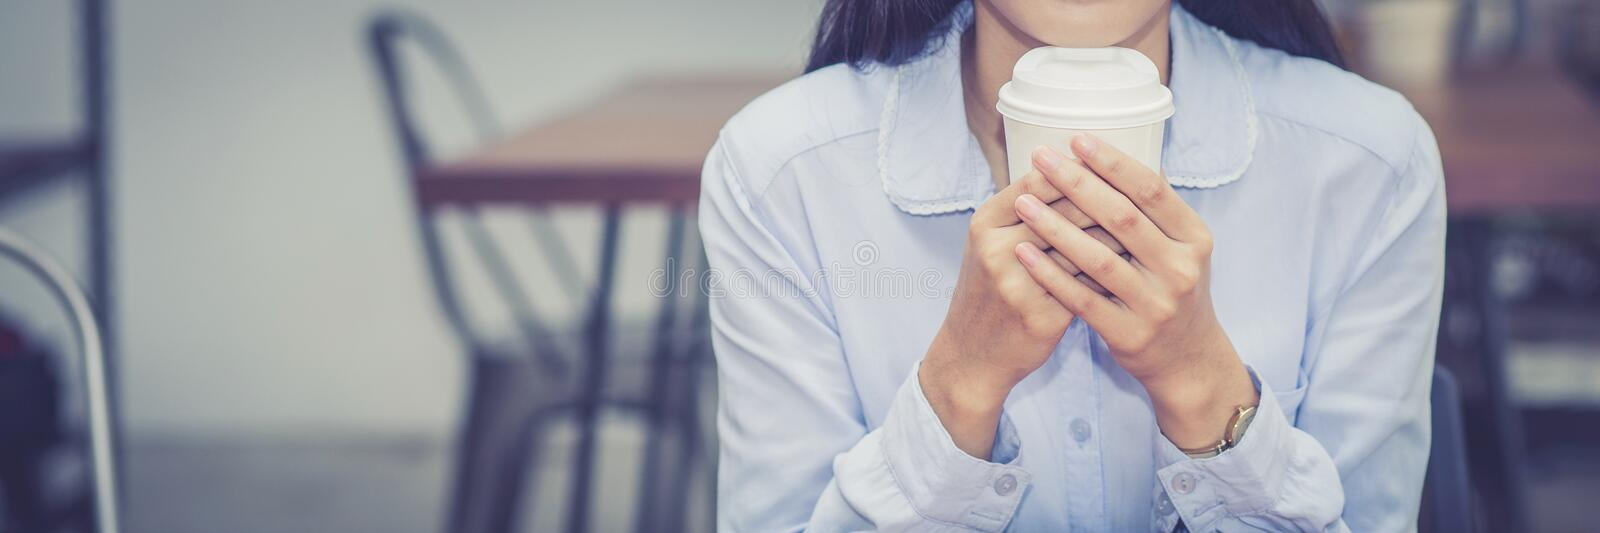 Closeup banner web young asian woman drinking coffee and in the morning at cafe royalty free stock images